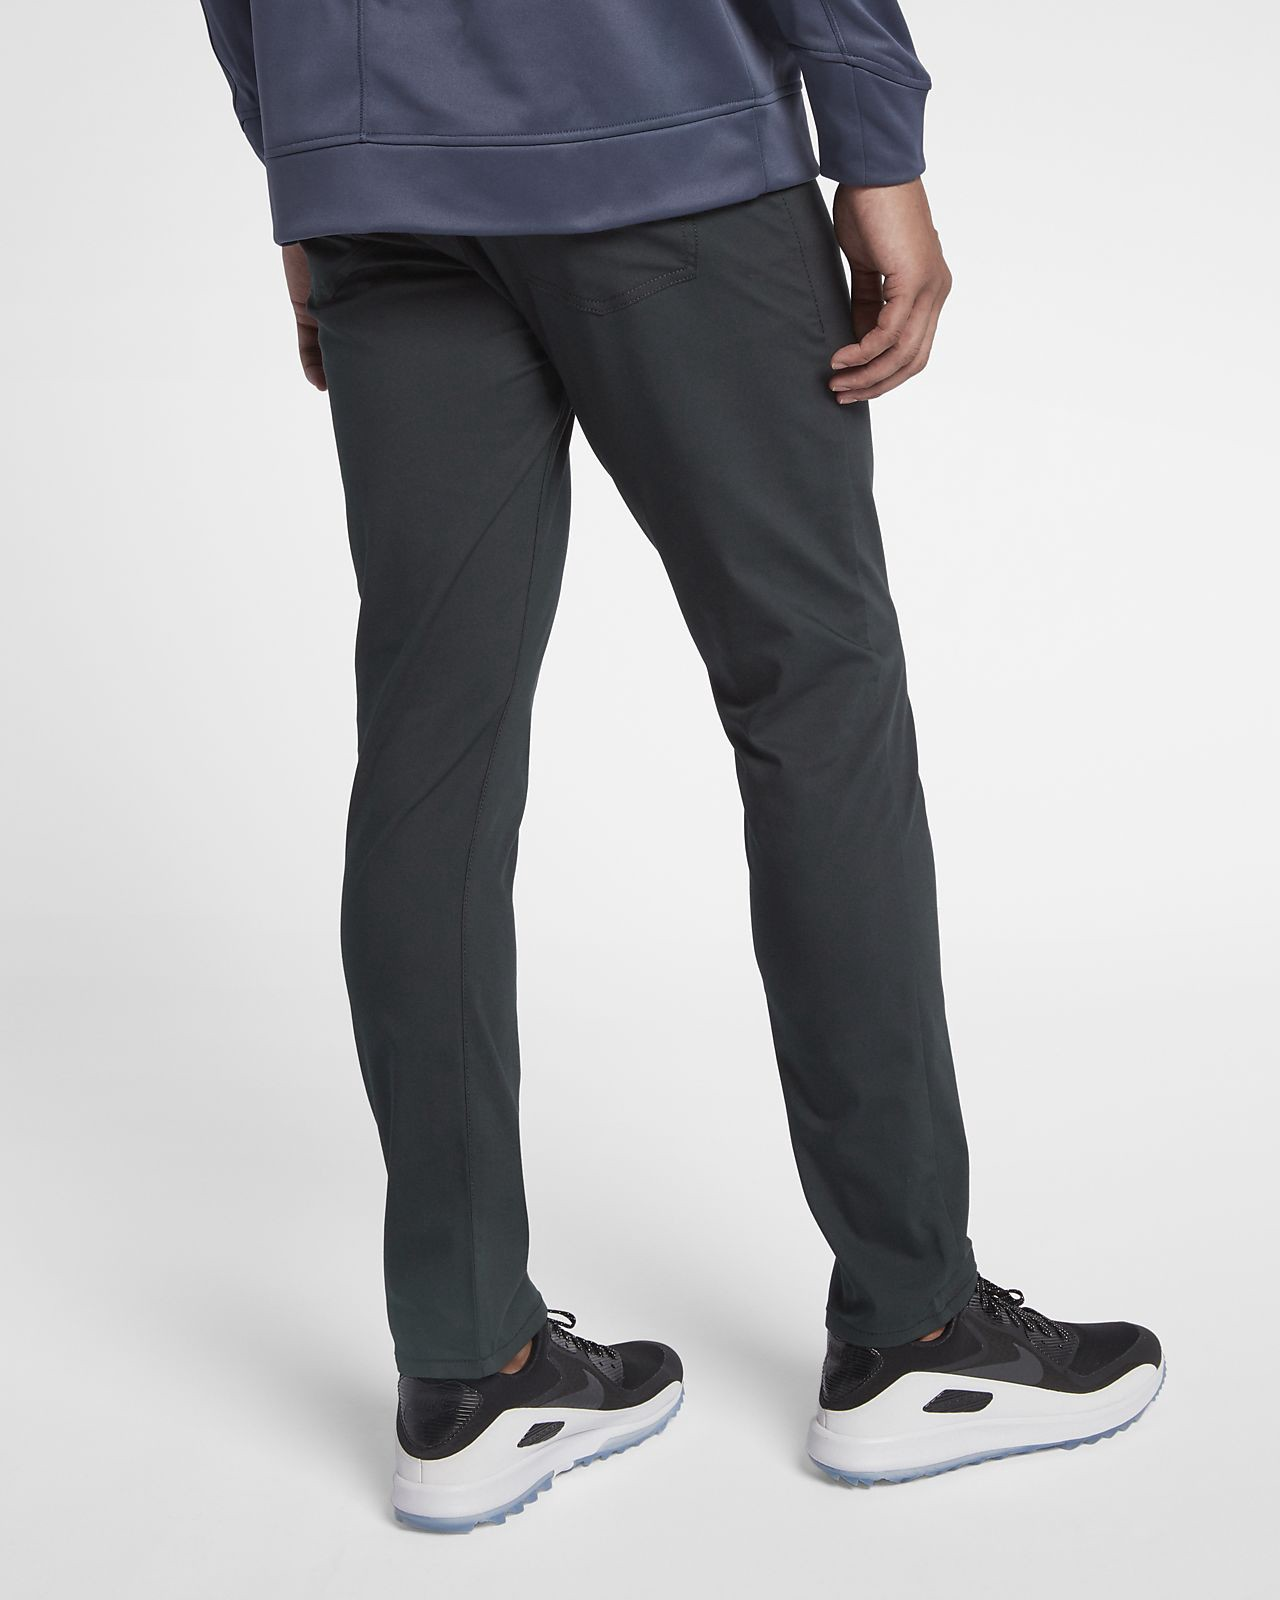 factory outlet better find workmanship Nike Flex 5 Pocket Men's Slim Fit Golf Pants - 30/30 Silver ...